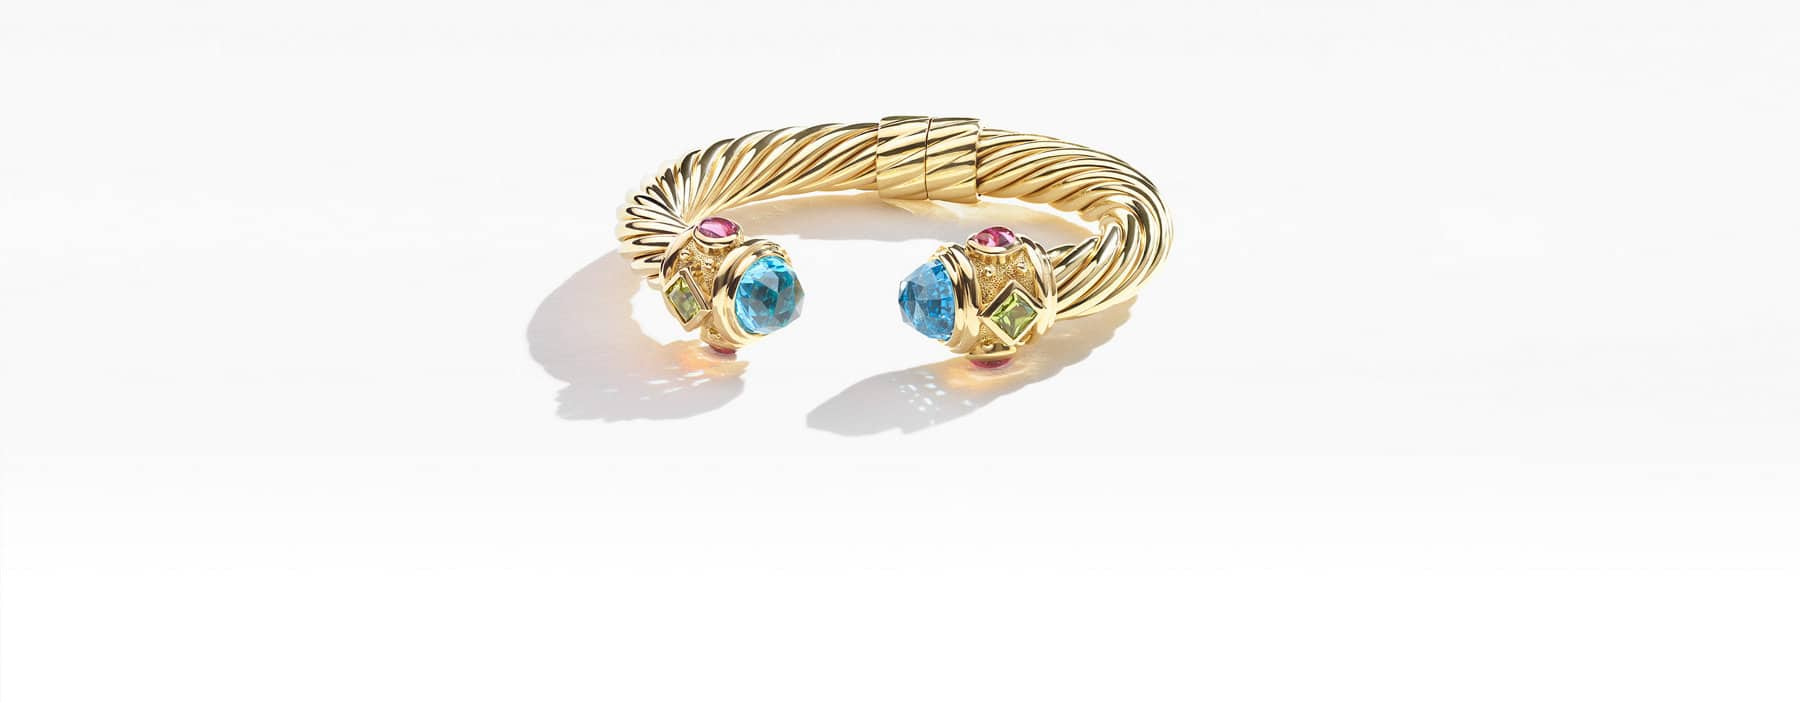 A color photo shows a cable Renaissance bracelet laying down in 18K yellow gold with blue topaz, peridot and pink tourmaline